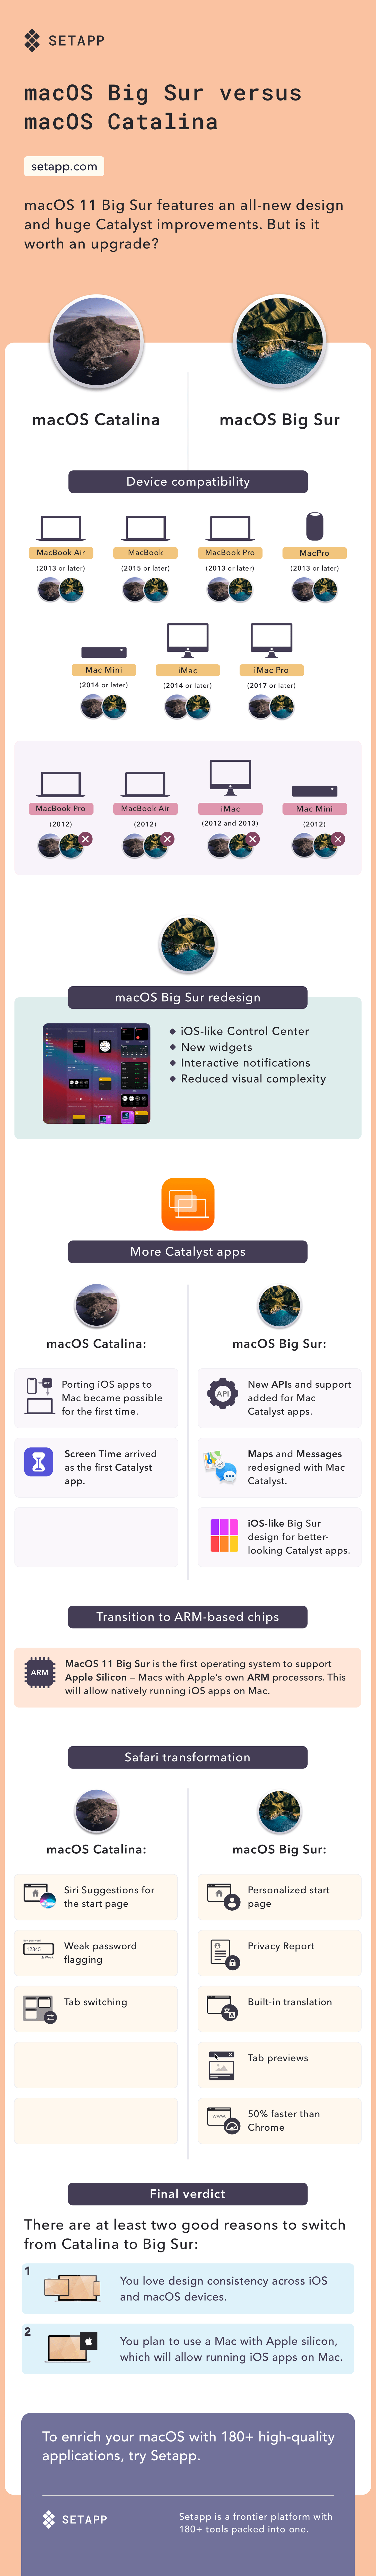 Big Sur Vs Catalina Detailed Review And Infographic